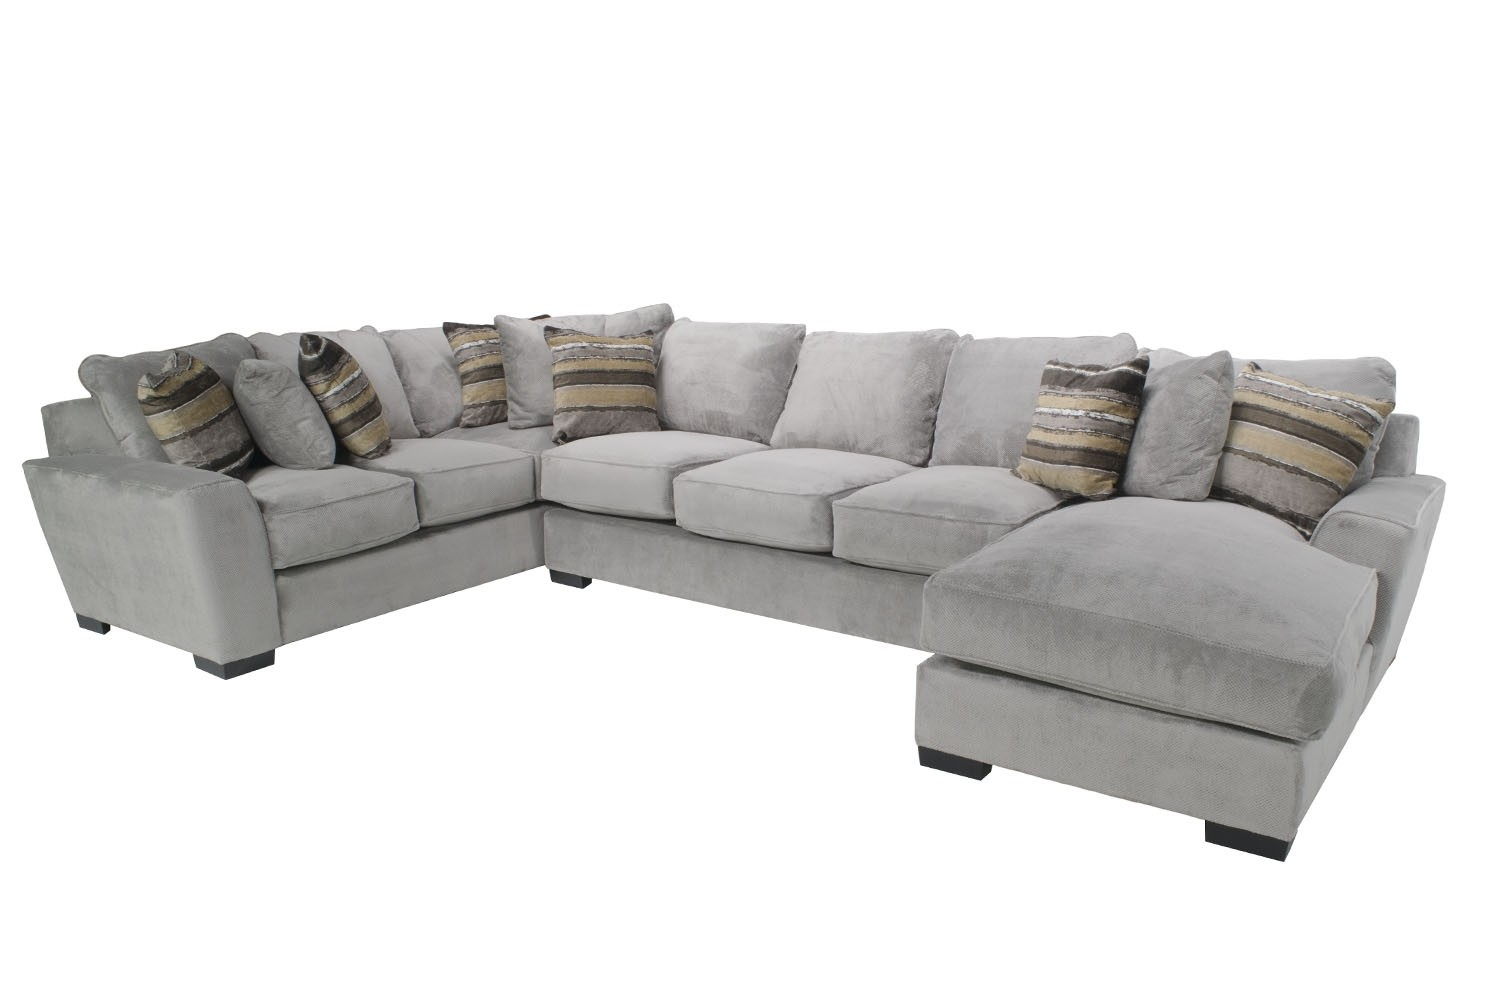 Ordinaire Oracle Right Facing Chaise Sectional